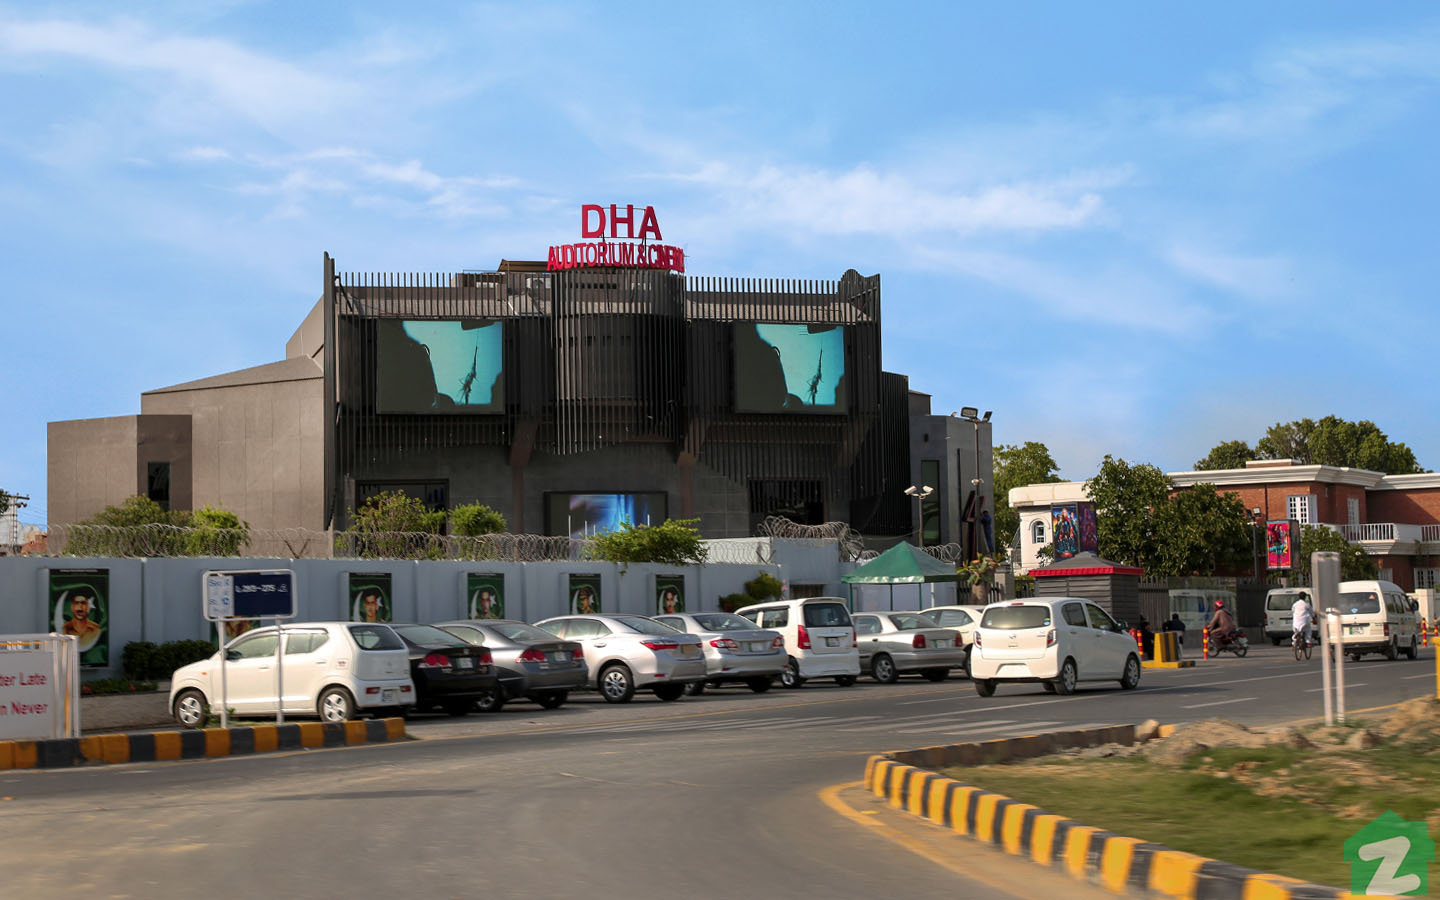 DHA Cinema and Auditorium, DHA Lahore